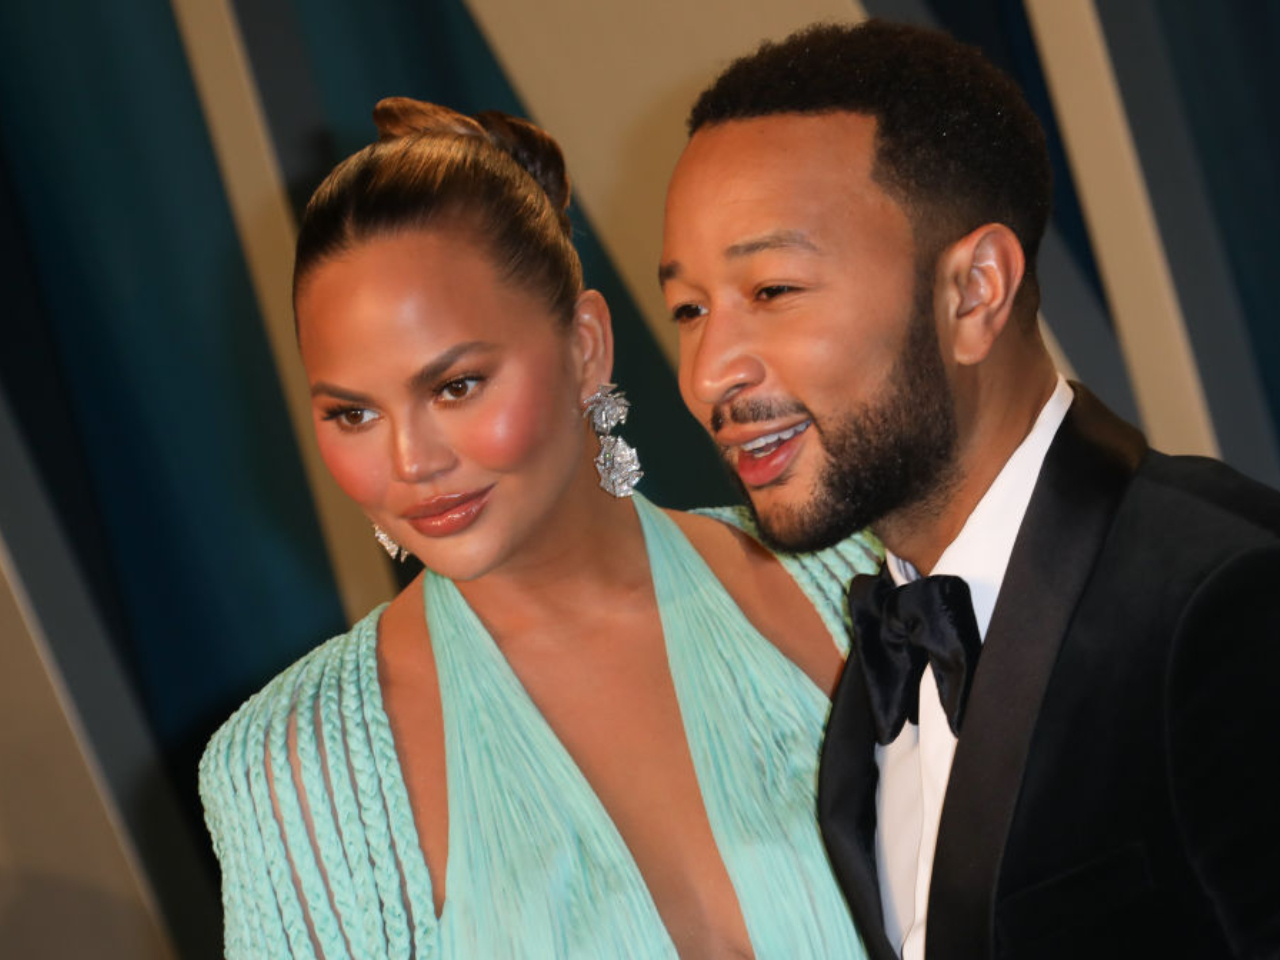 Chrissy Teigen Opens Up About Her Pregnancy Loss In Emotional Essay